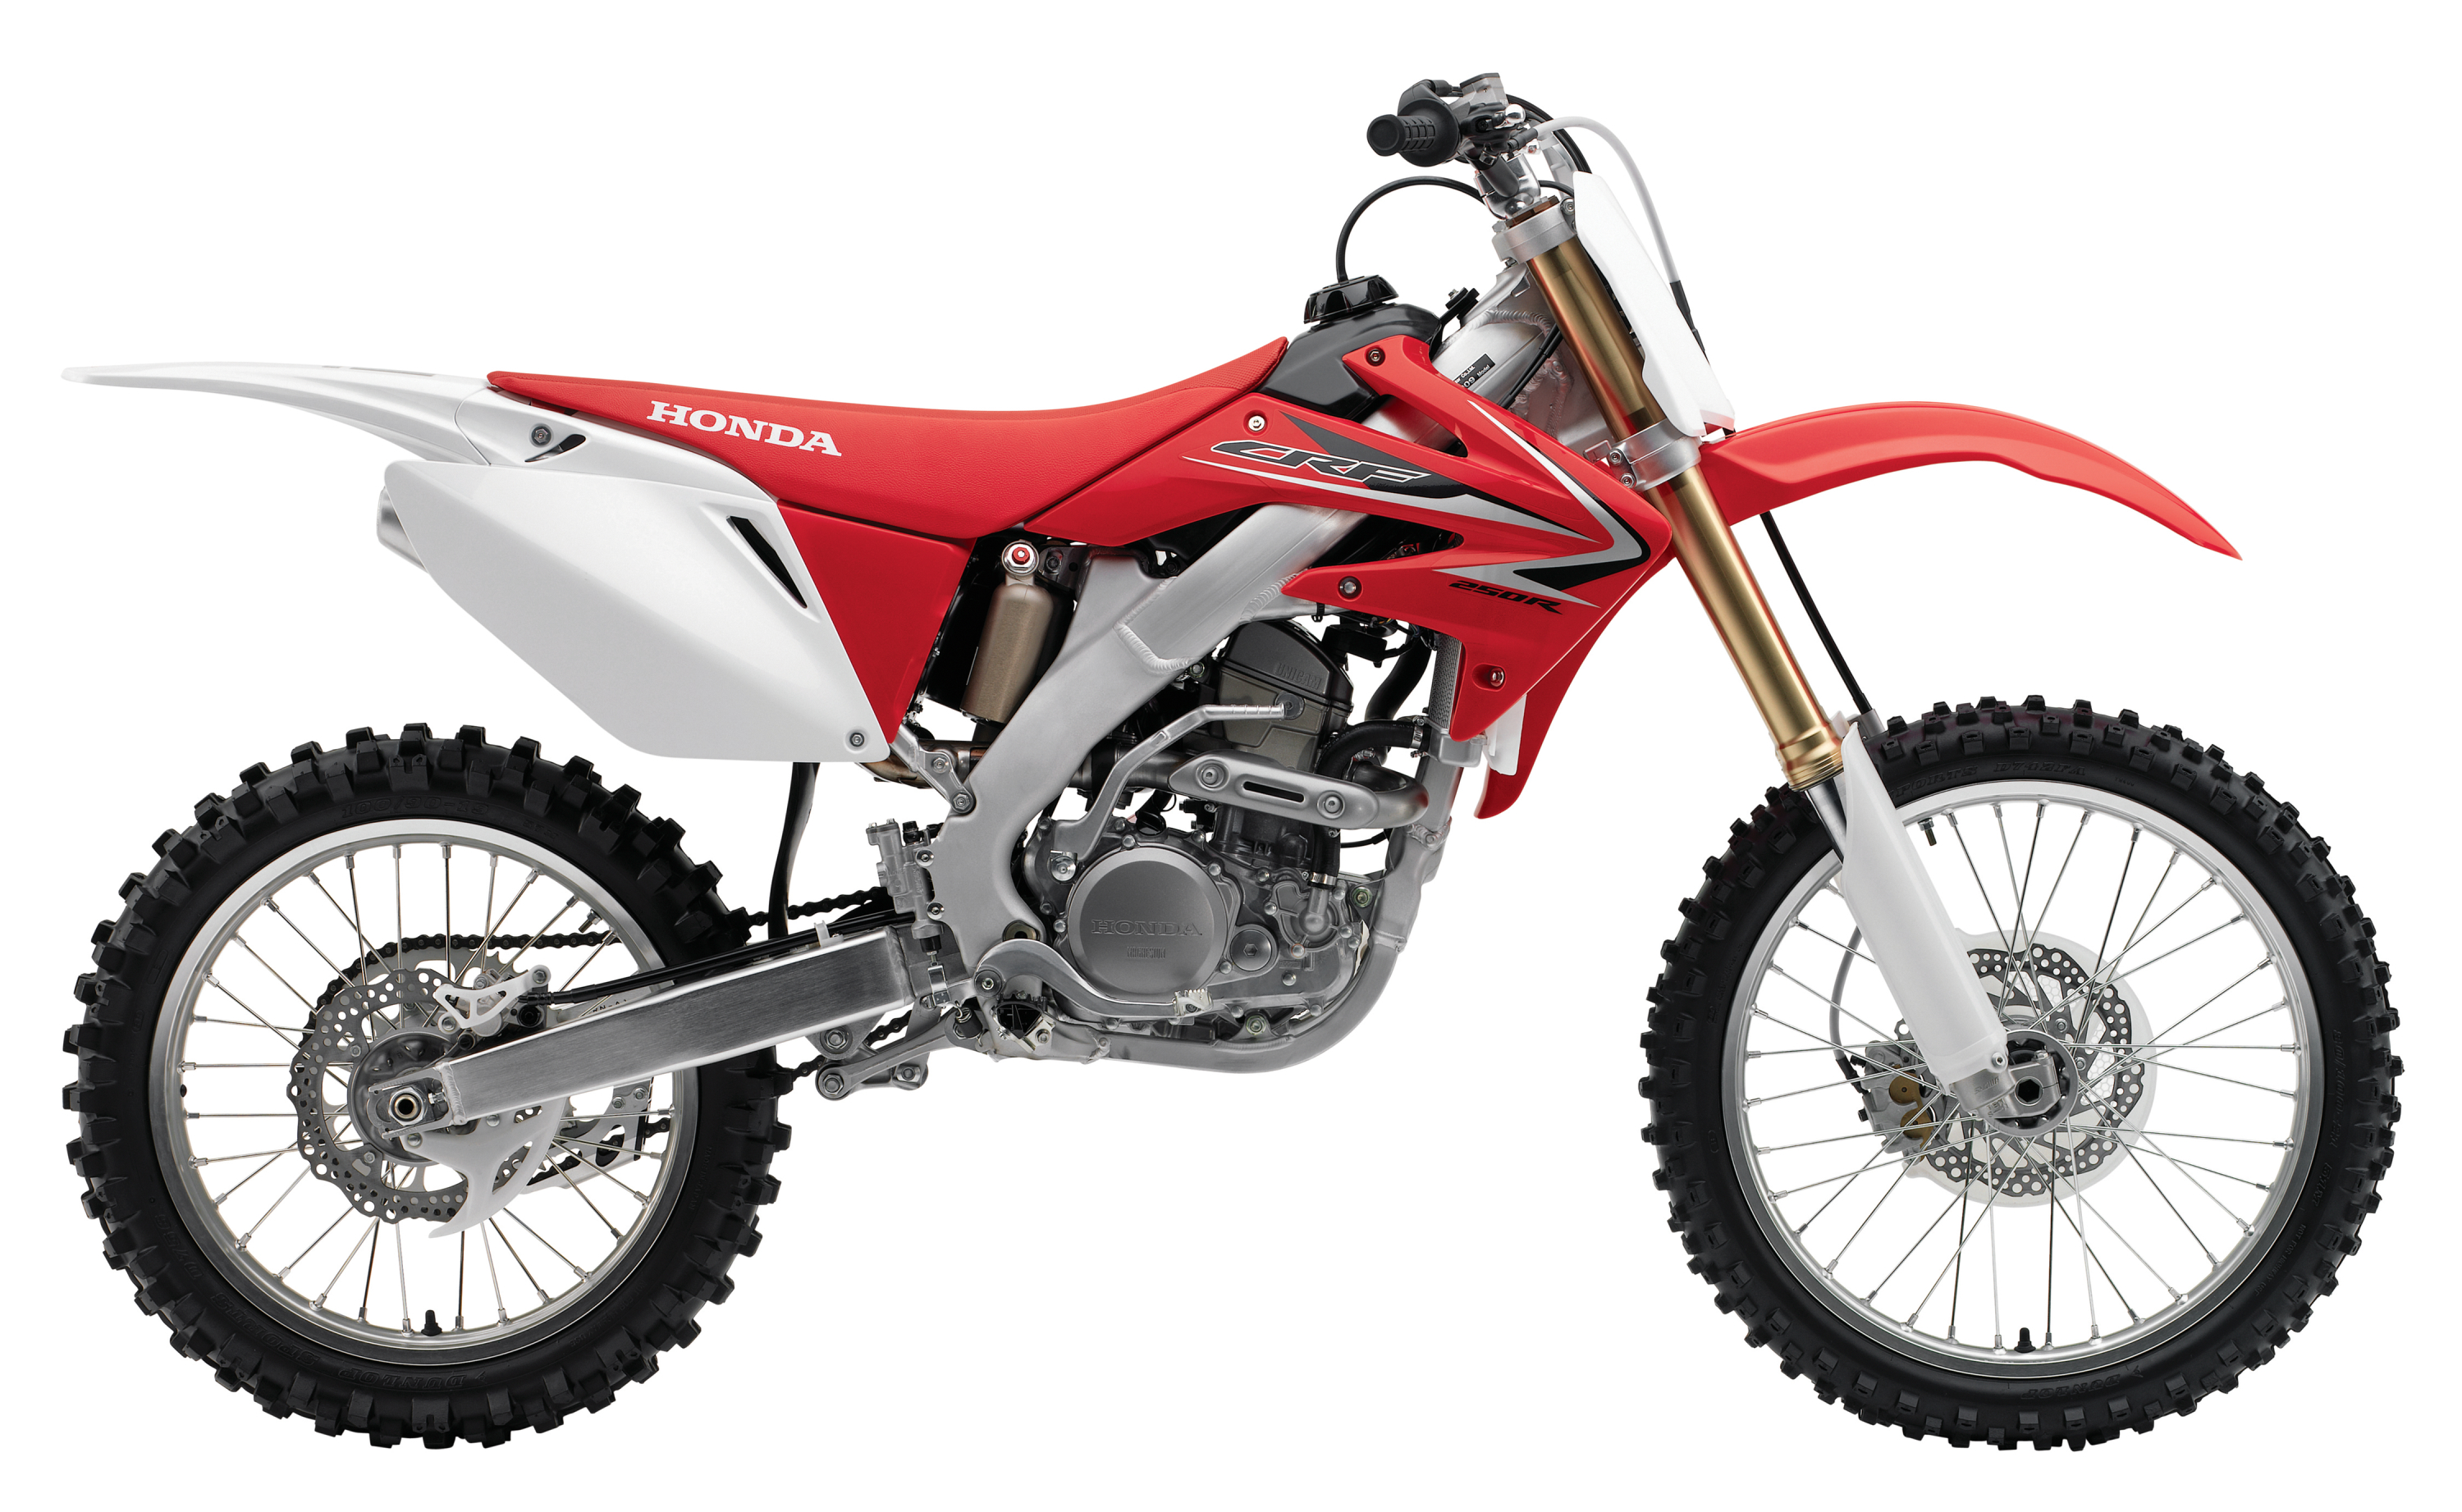 2009 honda crf250r review gallery top speed. Black Bedroom Furniture Sets. Home Design Ideas